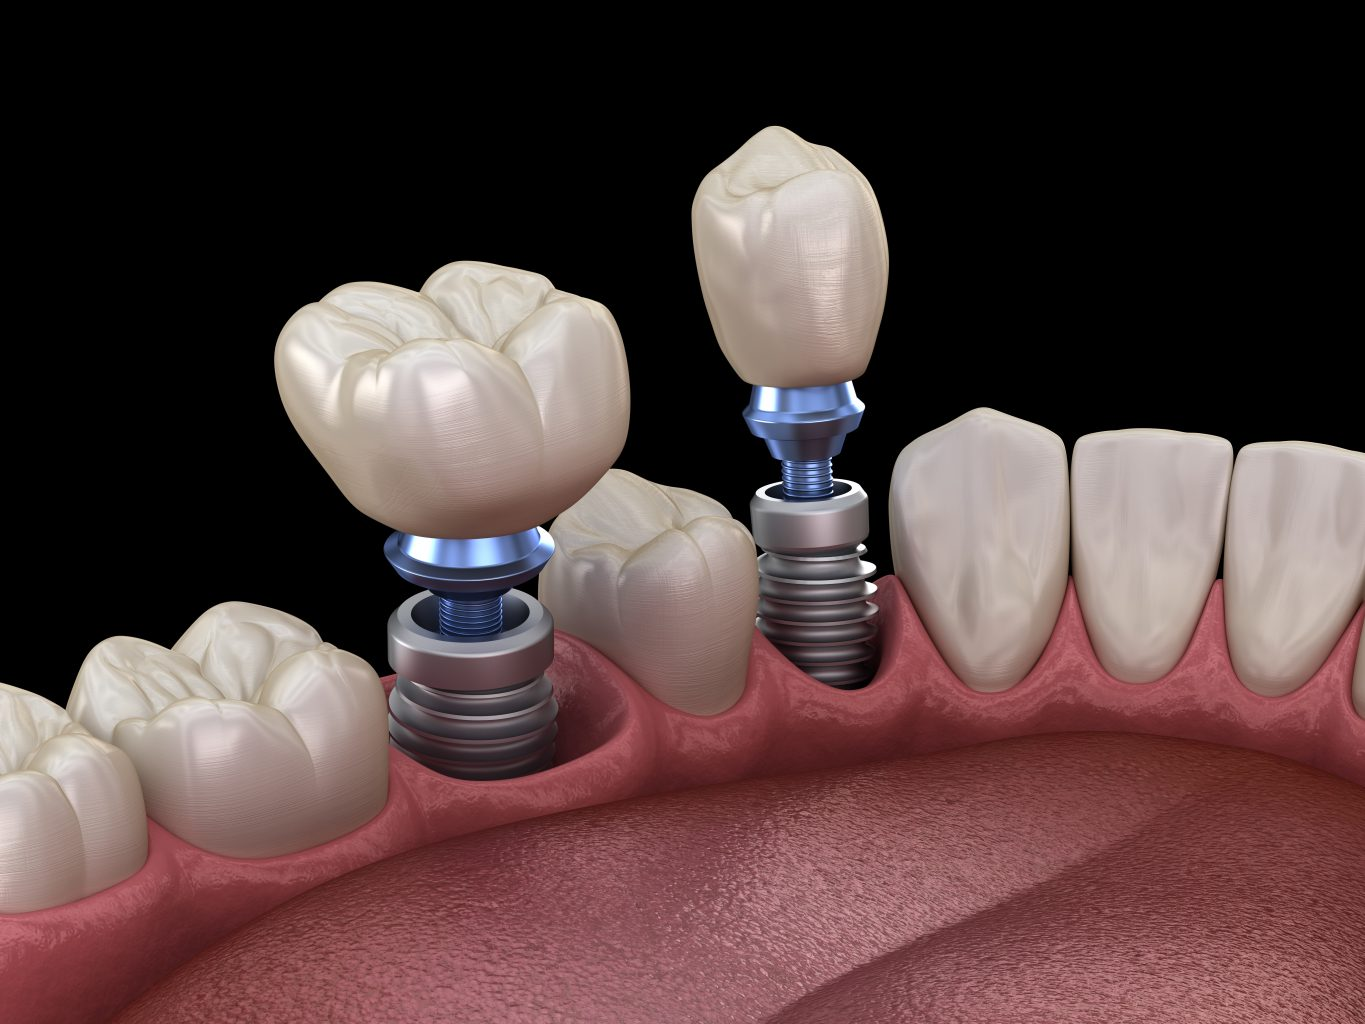 Premolar And Molar Tooth Crown Installation Over Implant Concept. 3d Illustration Of Human Teeth And Dentures